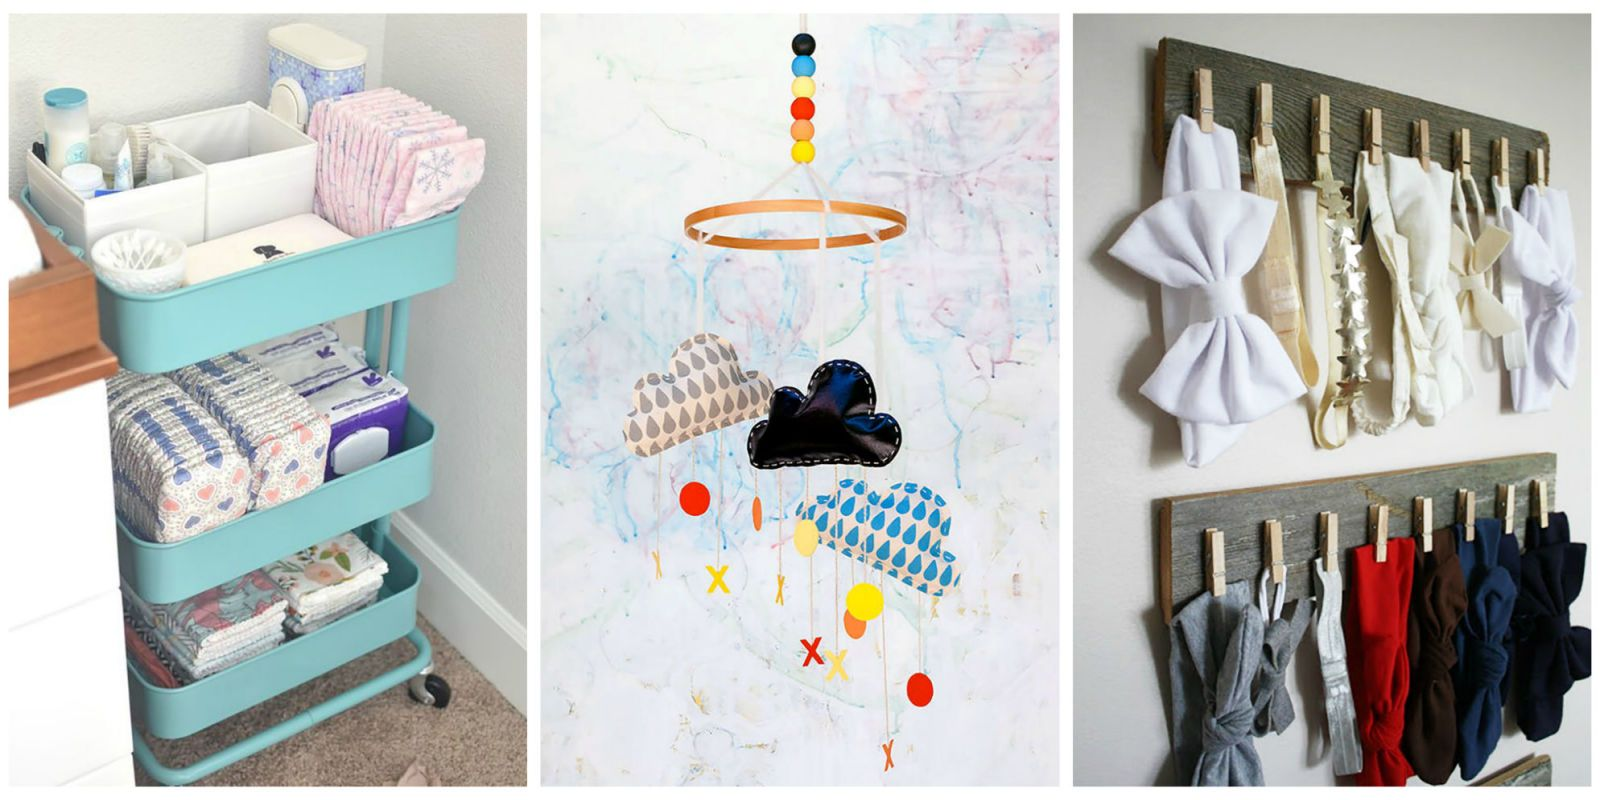 Whether You Have Space To Spare, Or You Need To Get Creative In A Small  Home, Try These Ideas For Room Decor, Storage, Organization And Other Pre  Baby ...